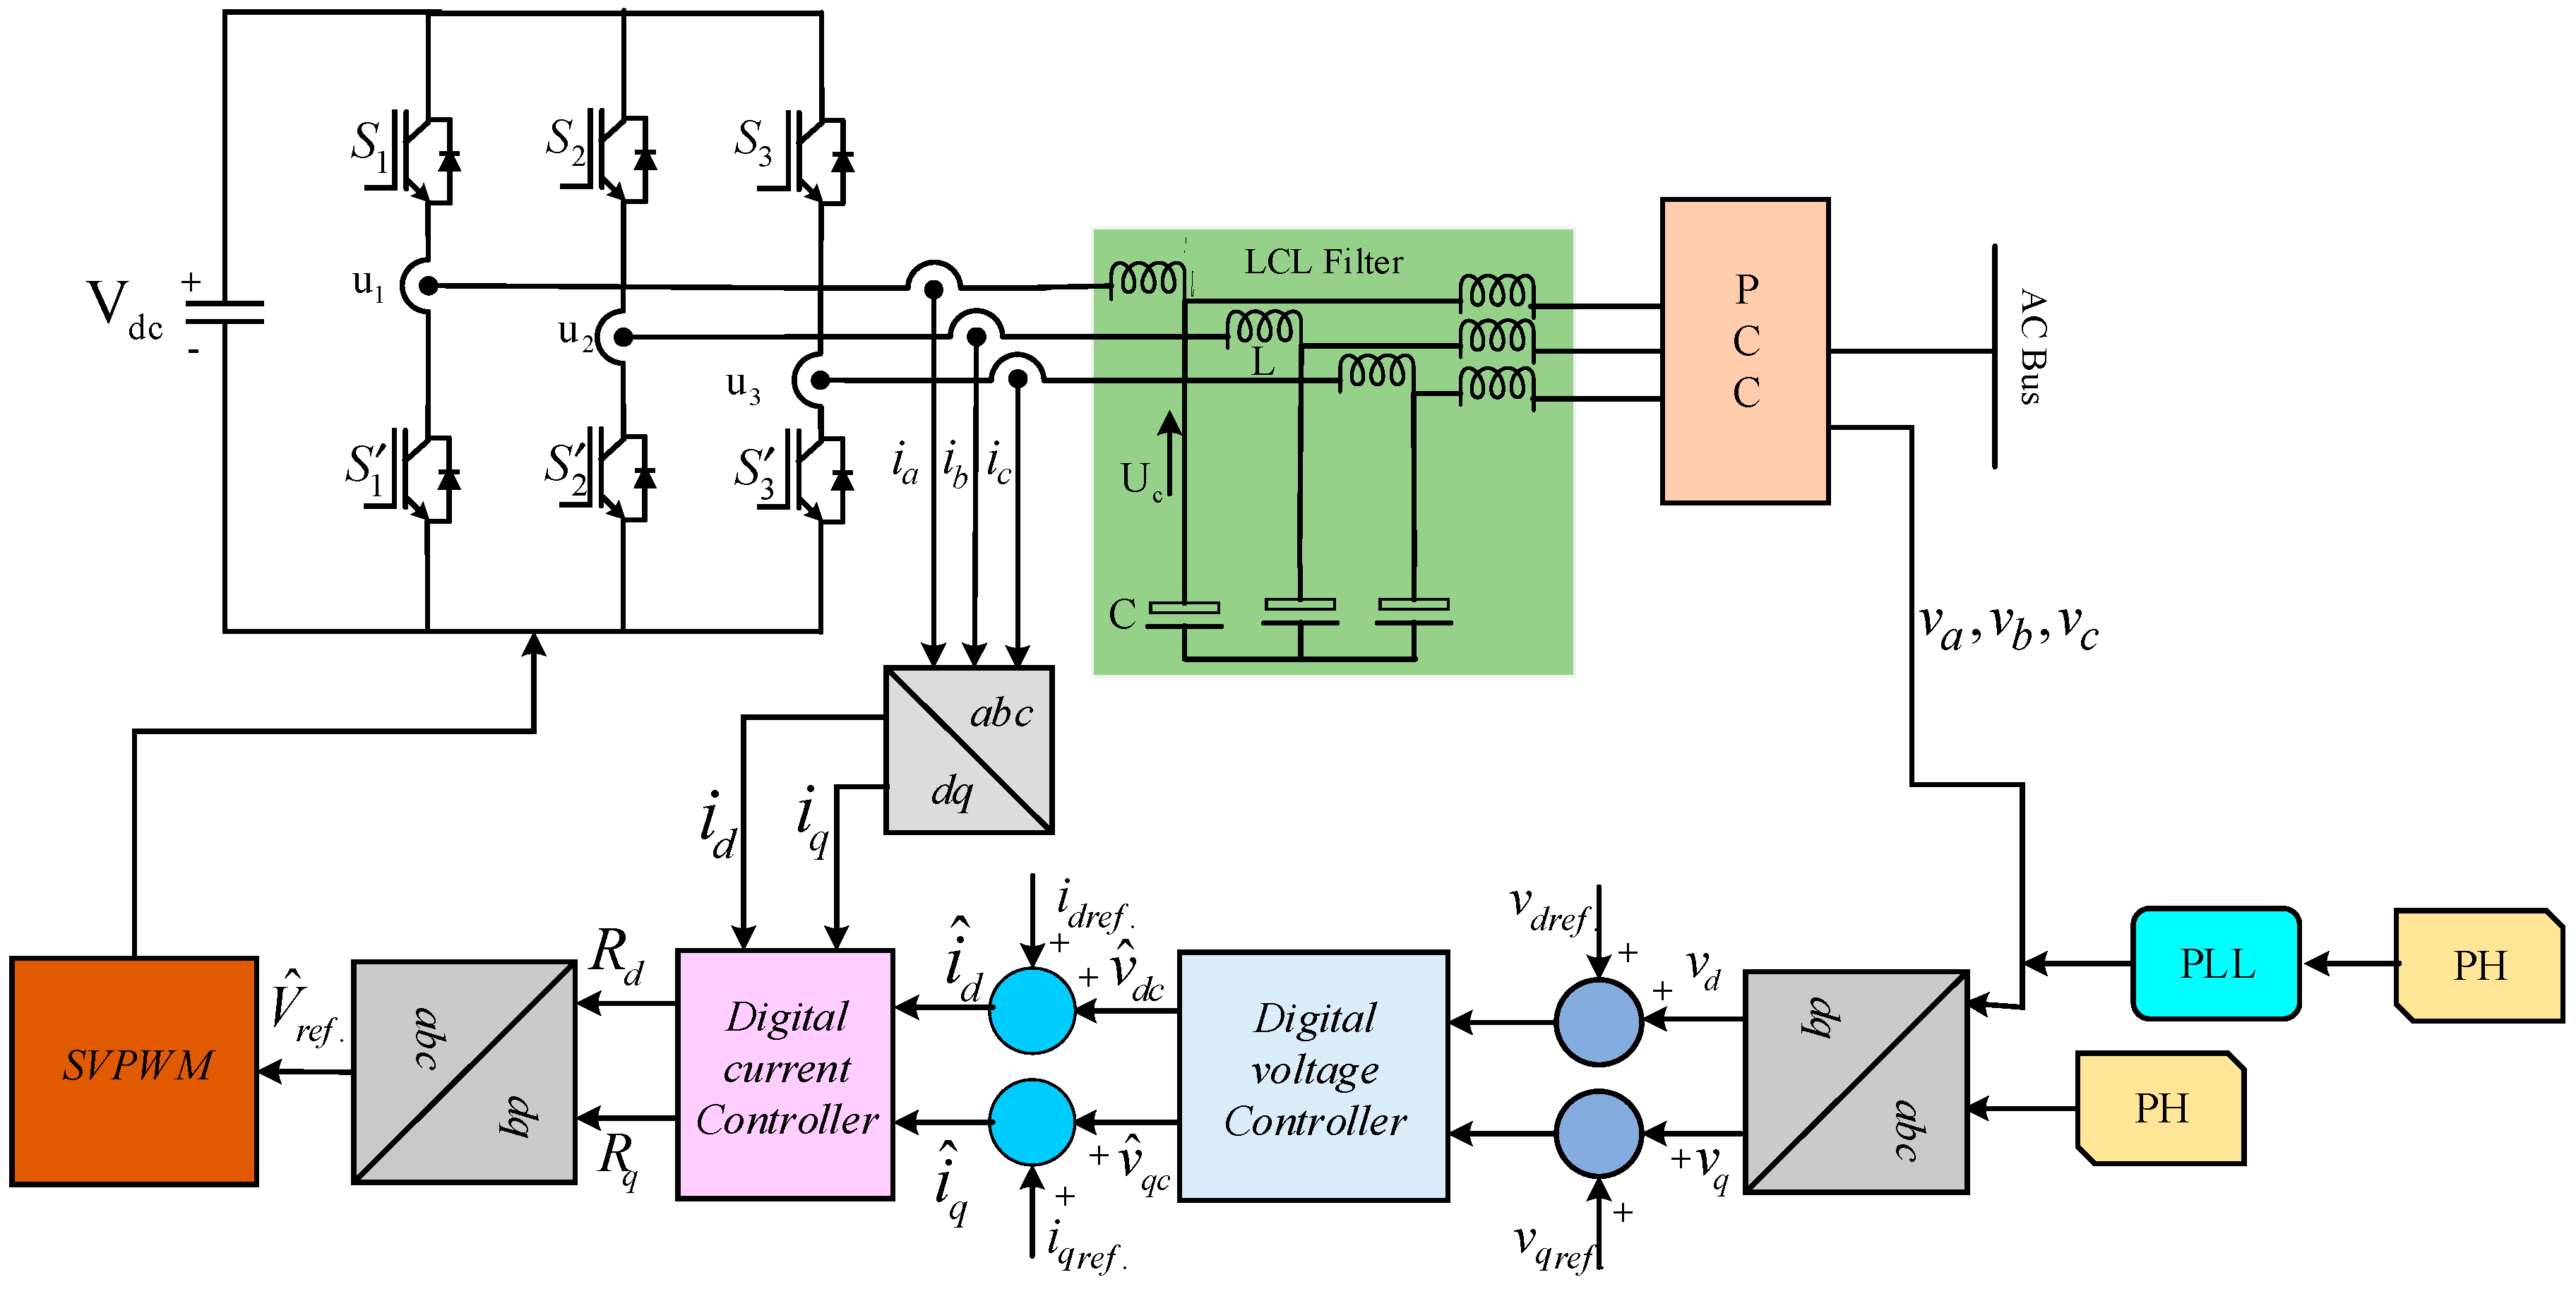 Schematic Diagram Inverter Control Pwm Motor Speed Controller Circuit Using Ic556 Homemade Electronics Free Fulltext Digital Techniques Based On